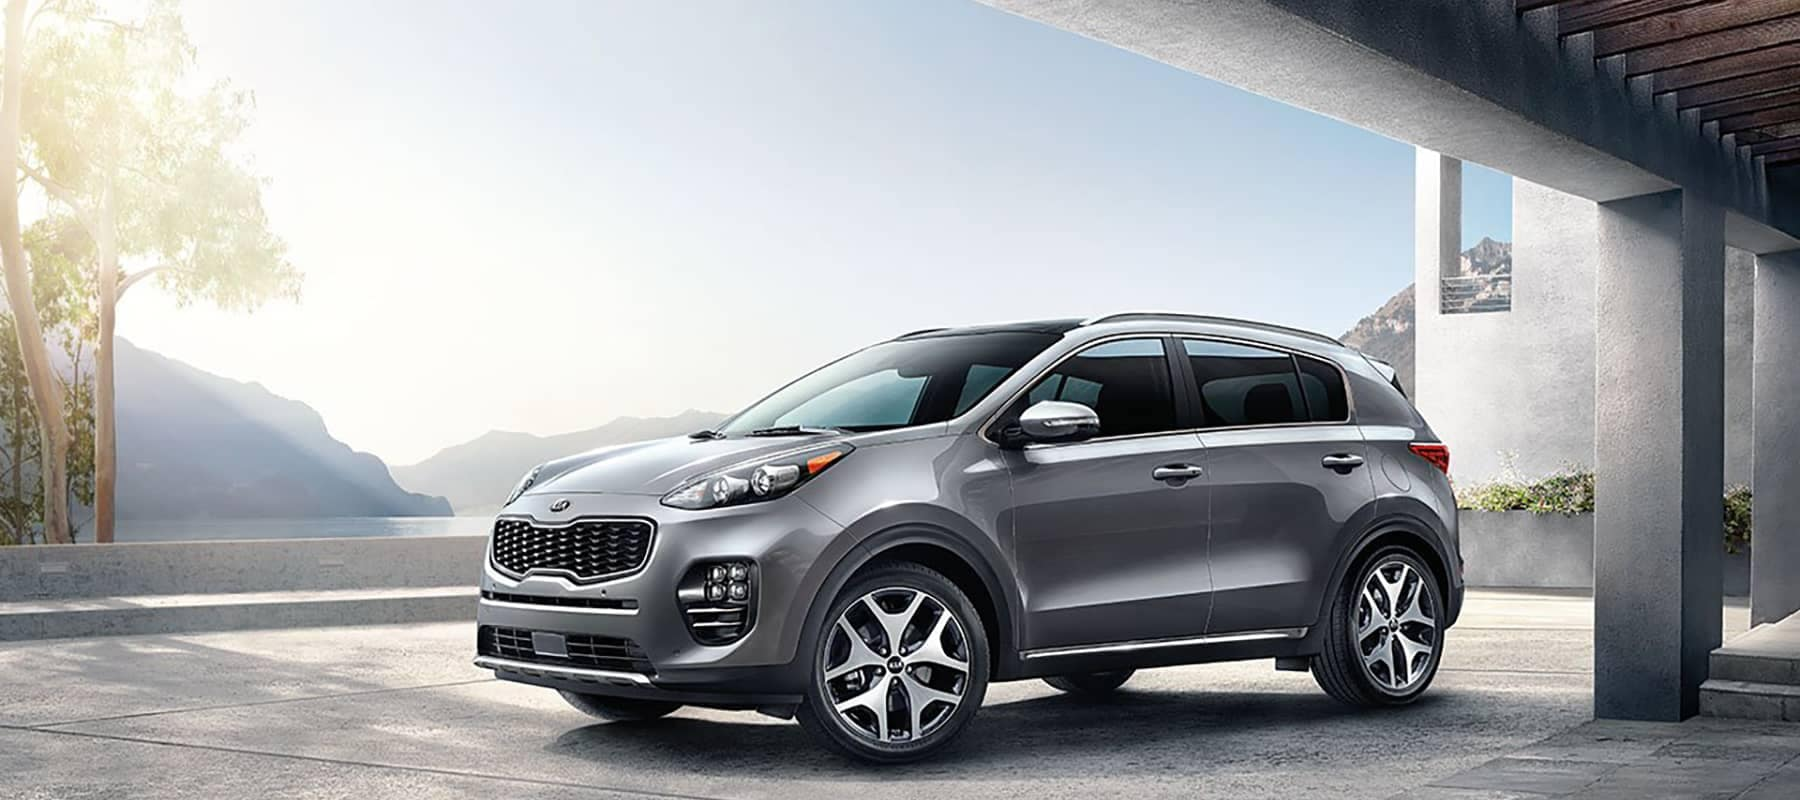 Cable Dahmer Independence >> Kia SUV Models | Kia AWD SUVs | Cable Dahmer Kia